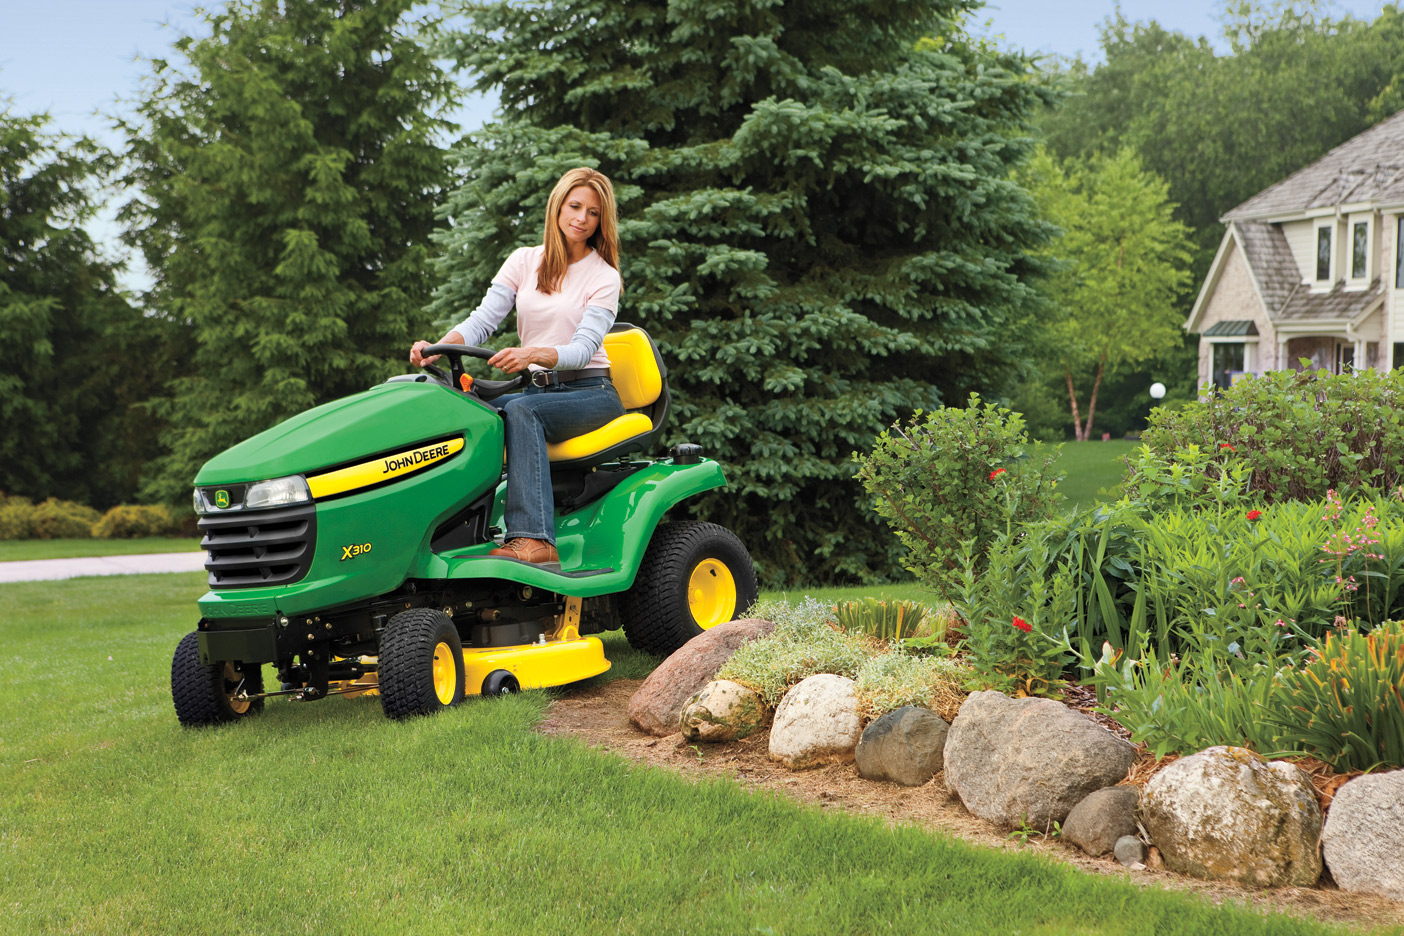 Lawn And Garden Supply : Lawn equipment rental service providers tips prices